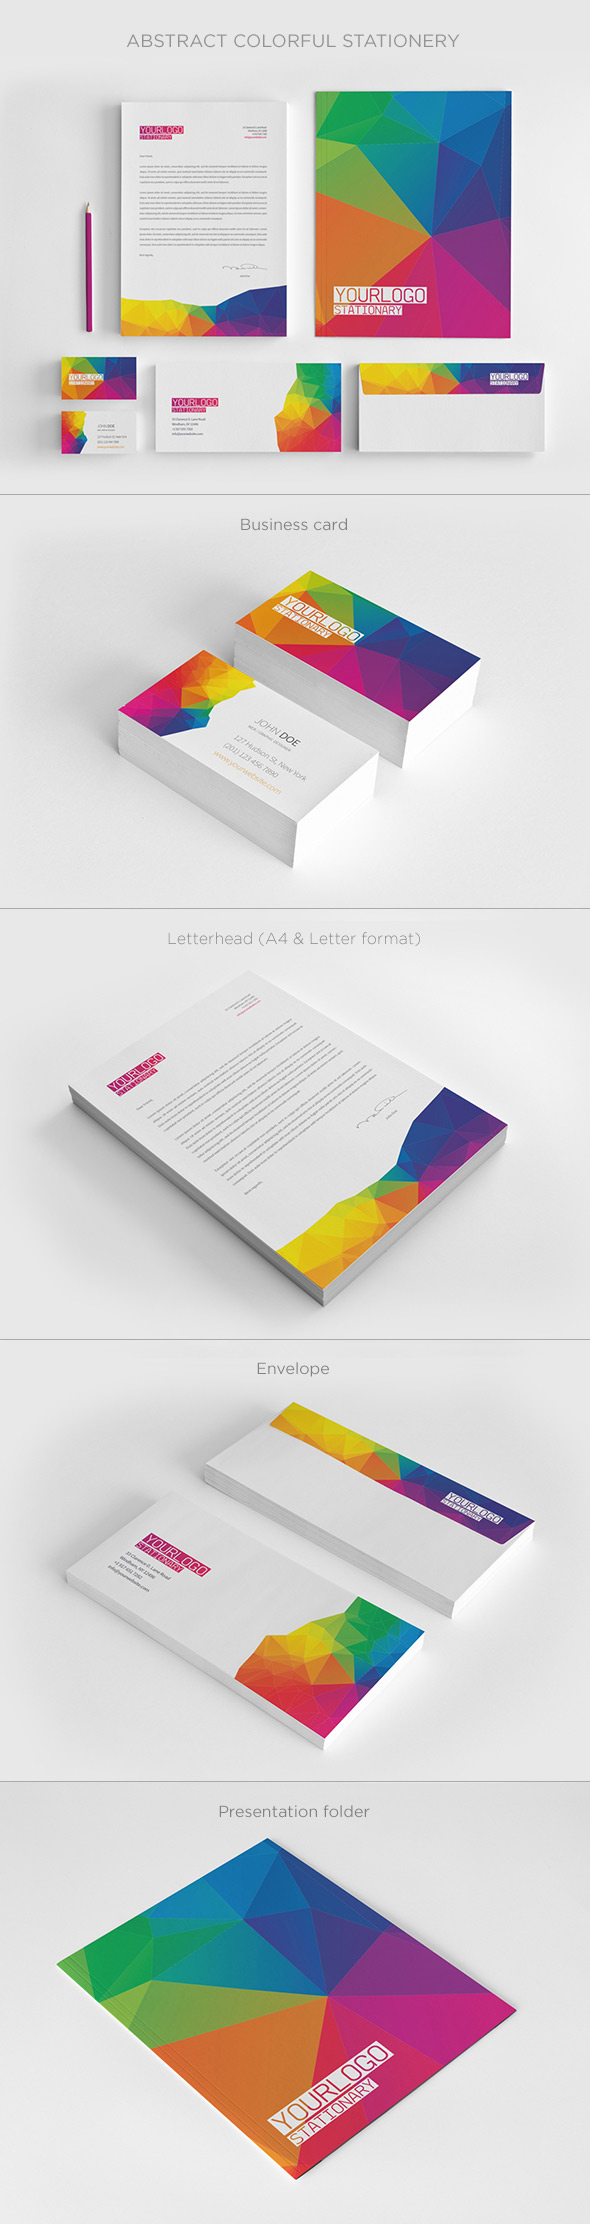 Abstract Colorful Stationery Design Set